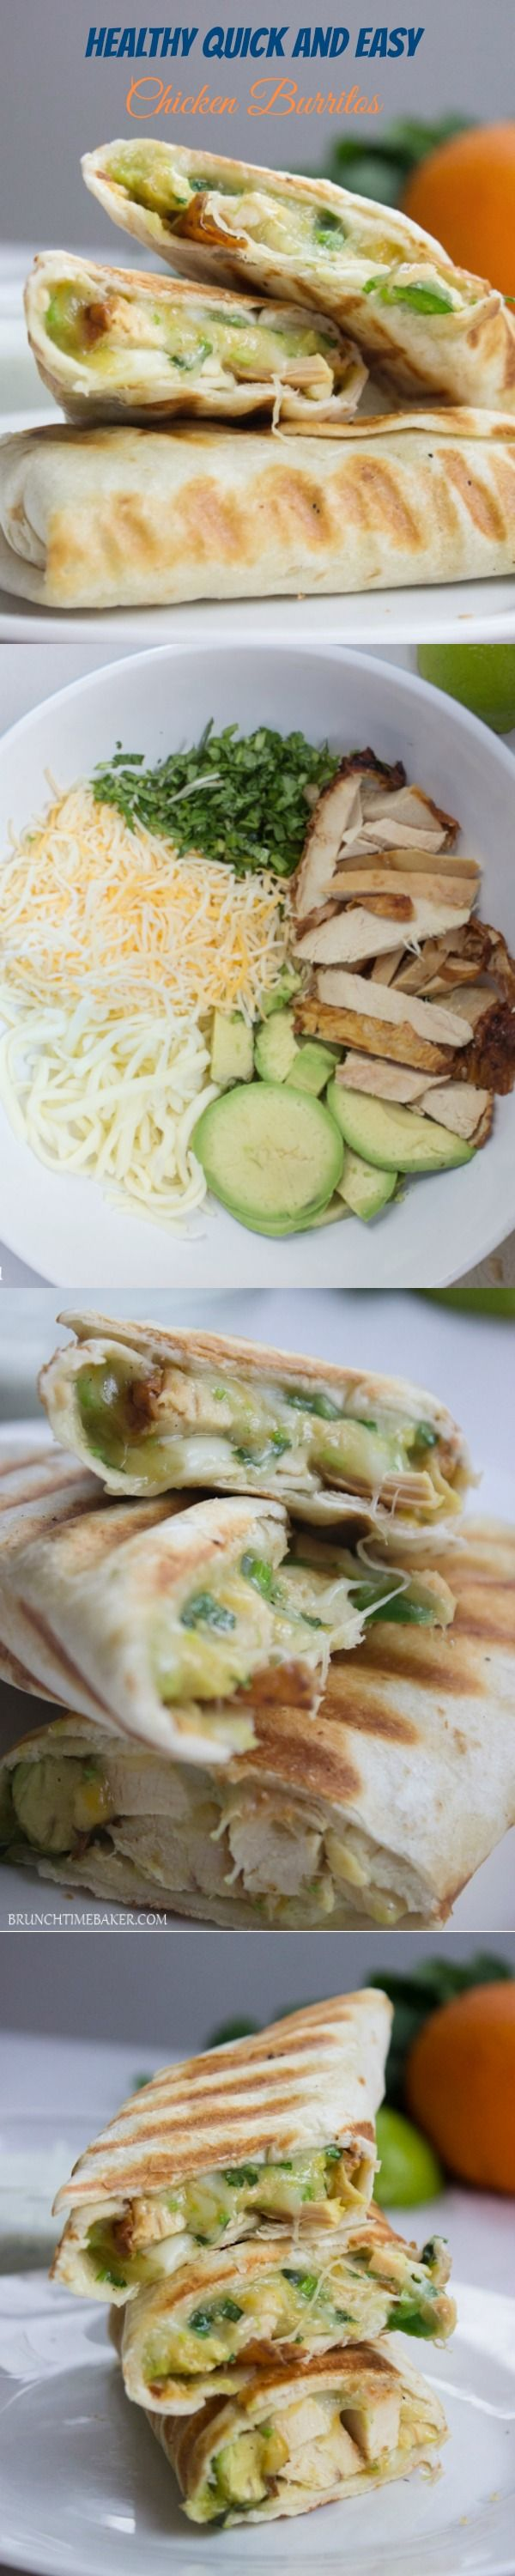 Chicken Avocado Burritos::